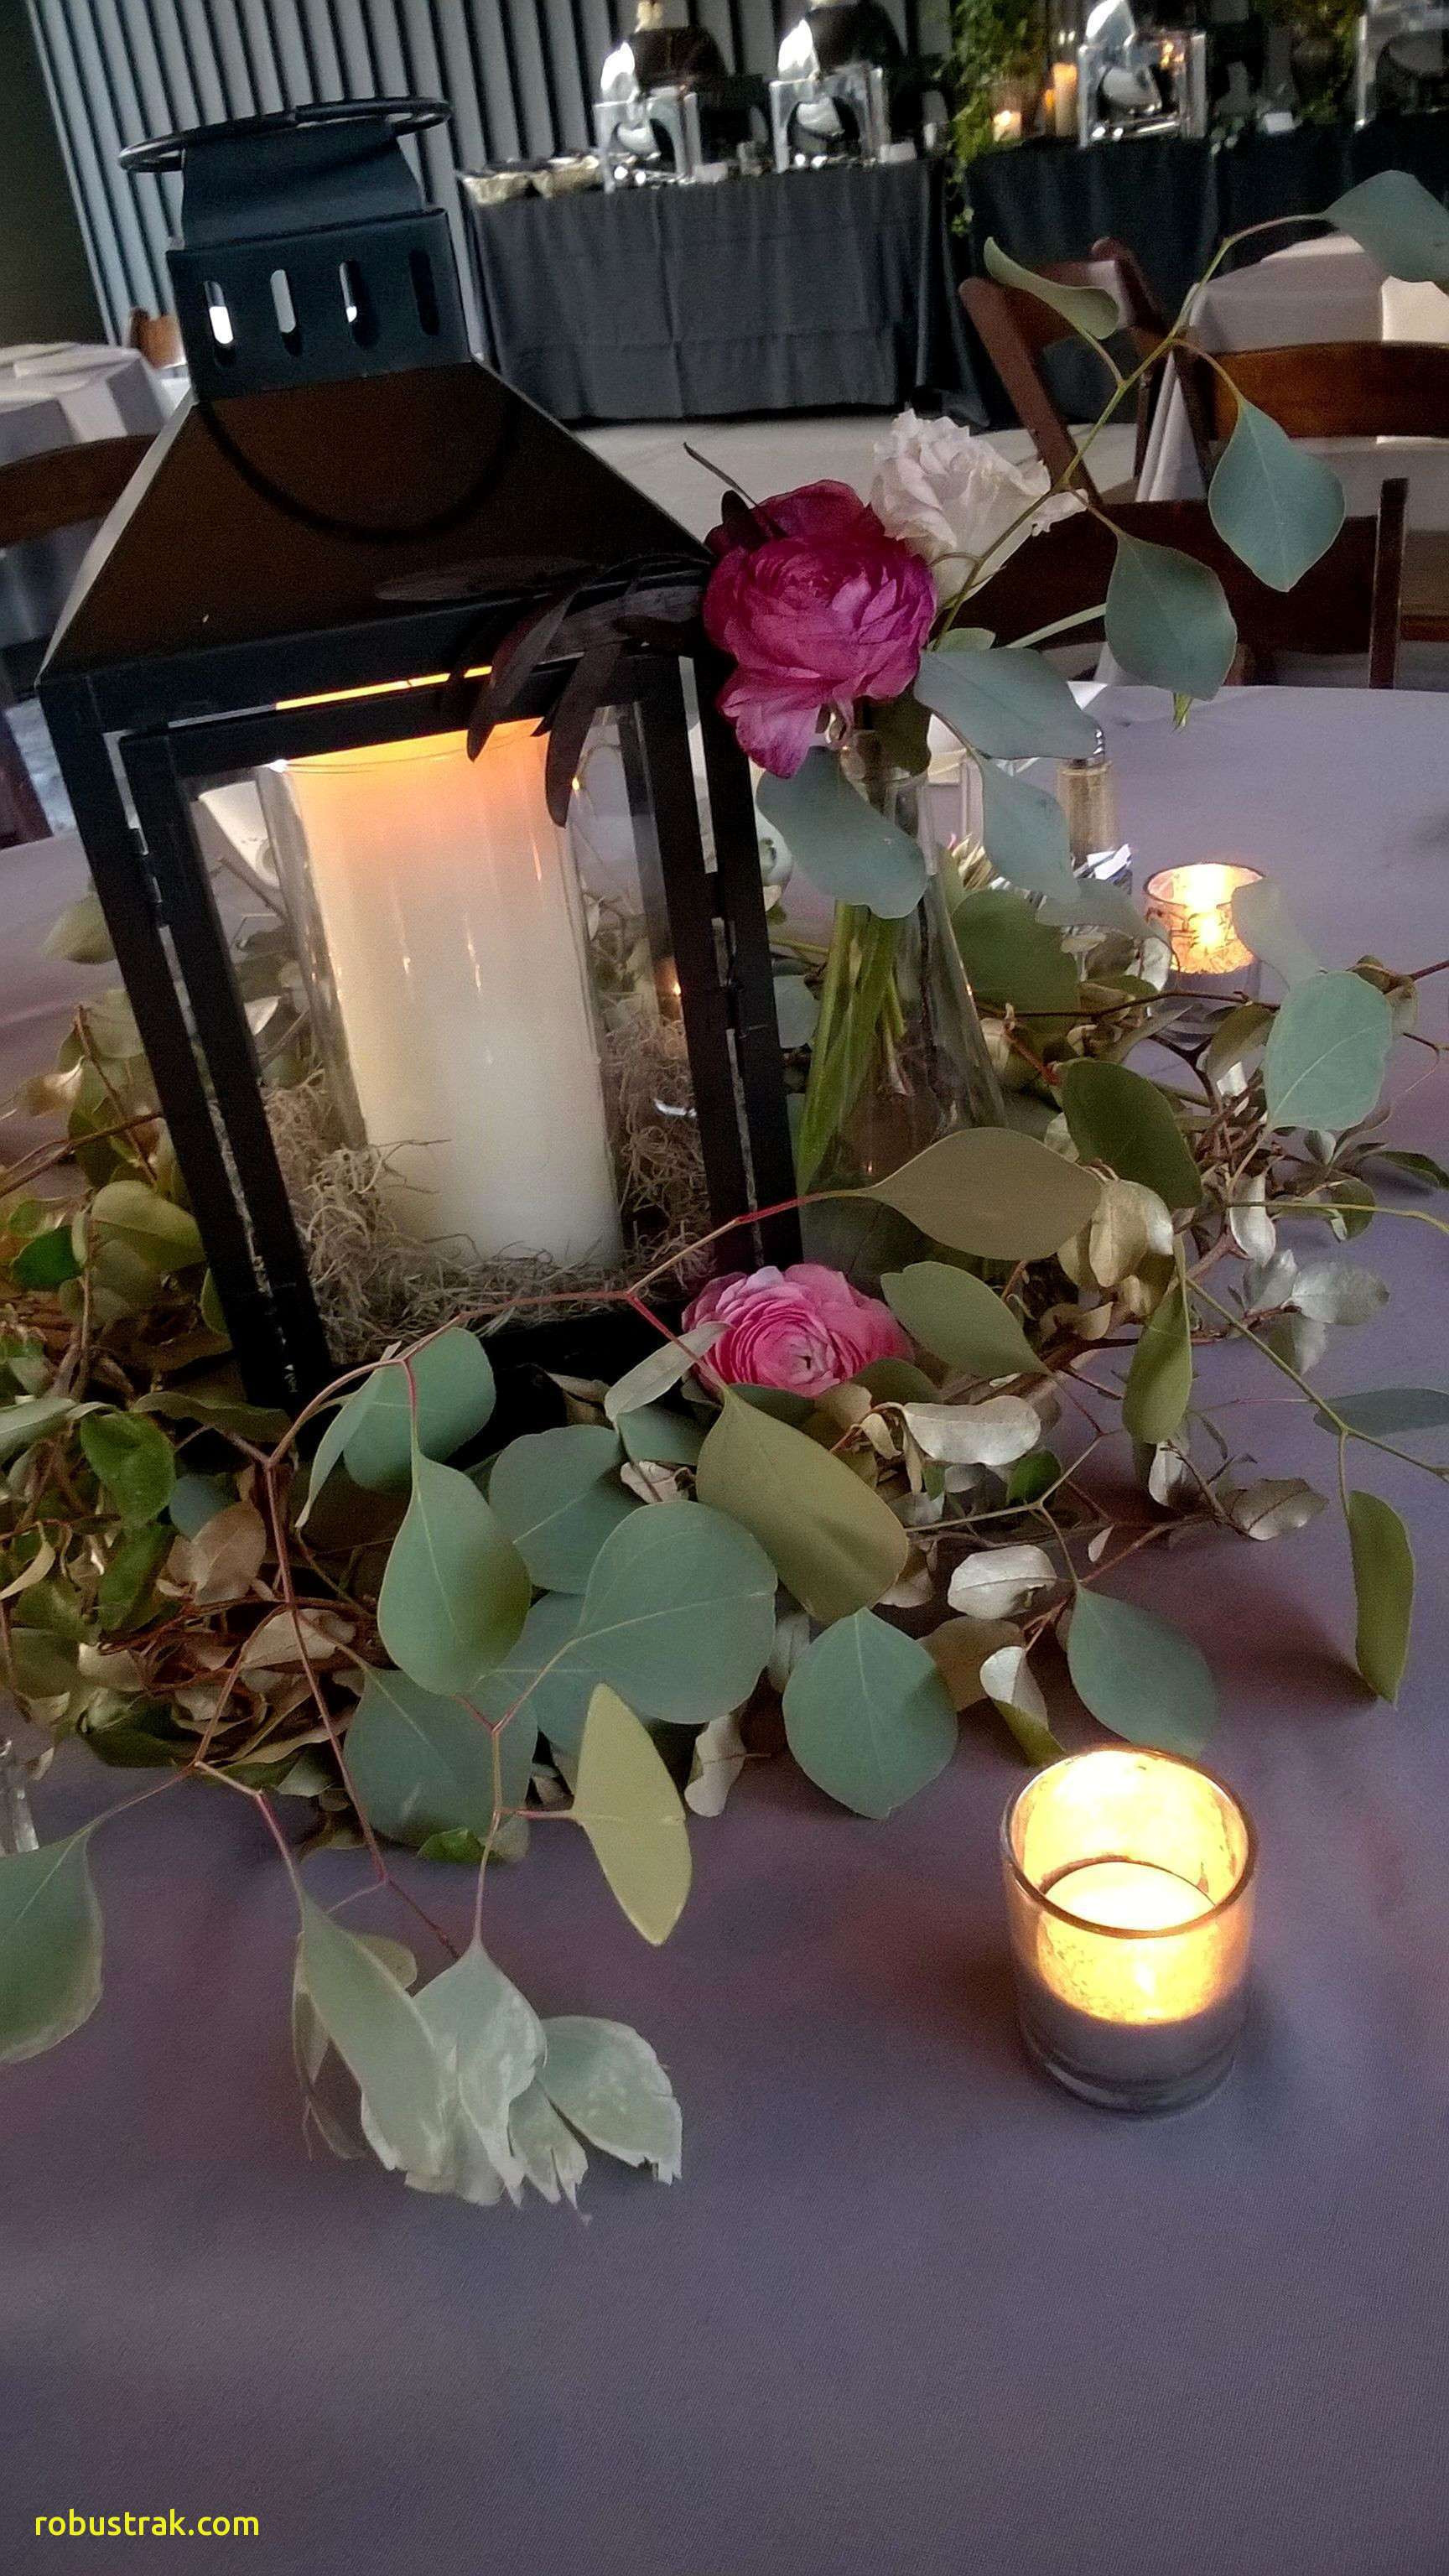 tall vase and flowers of tall vase centerpiece ideas vases flowers in centerpieces 0d within gallery of tall vase centerpiece ideas vases flowers in centerpieces 0d flowerflowers design pictures